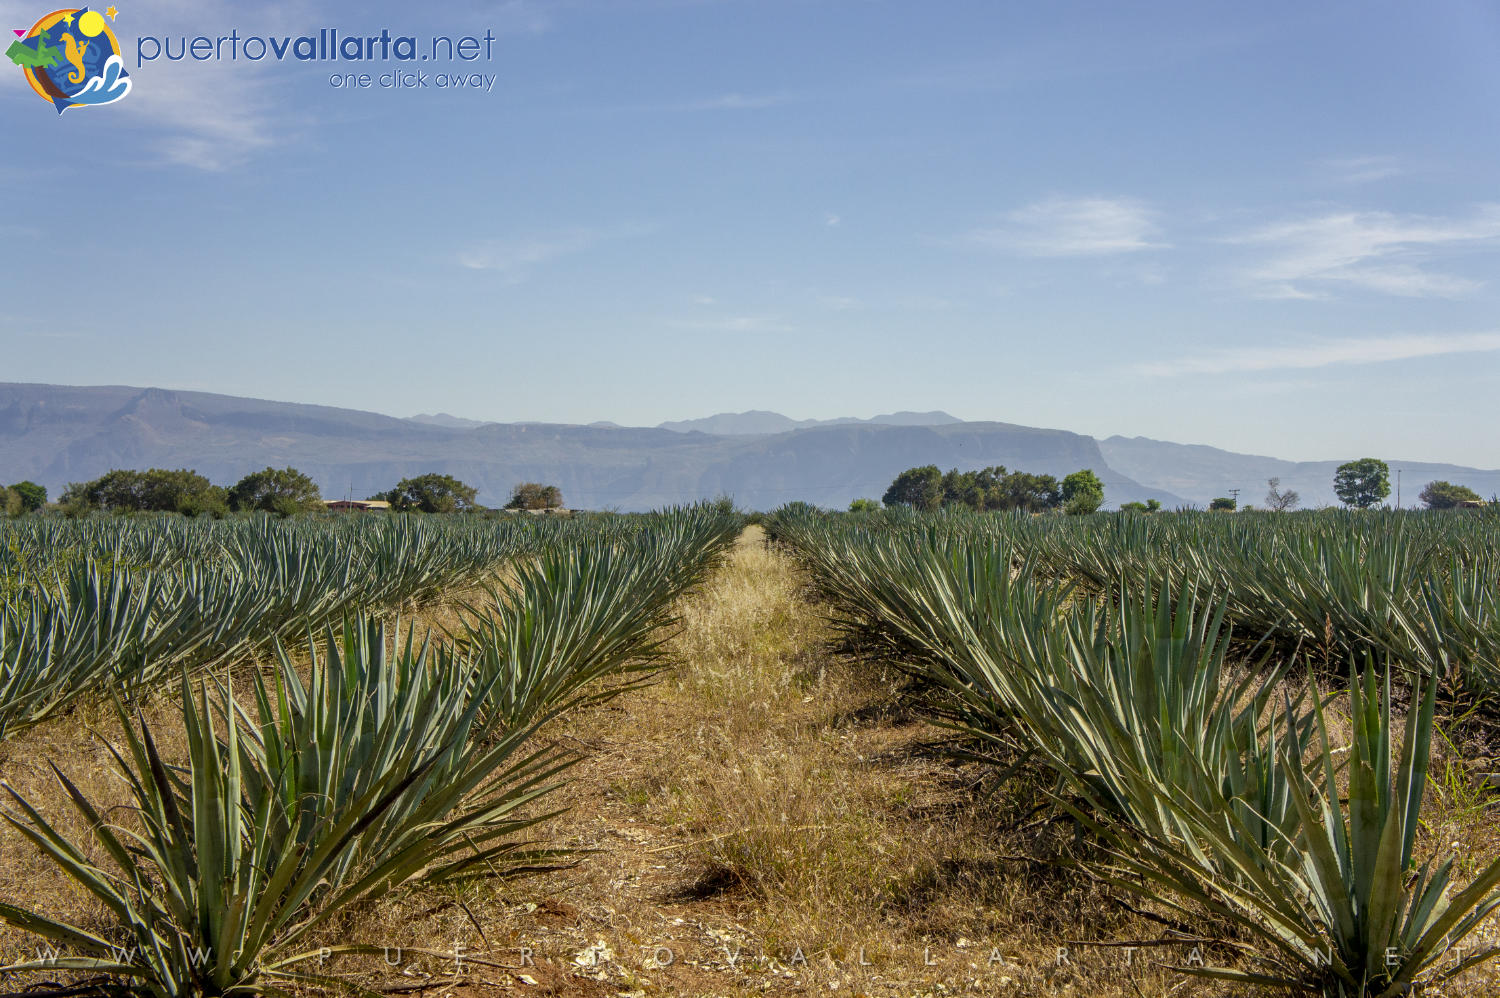 Blue Agave fields in Tequila, Jalisco, Mexico